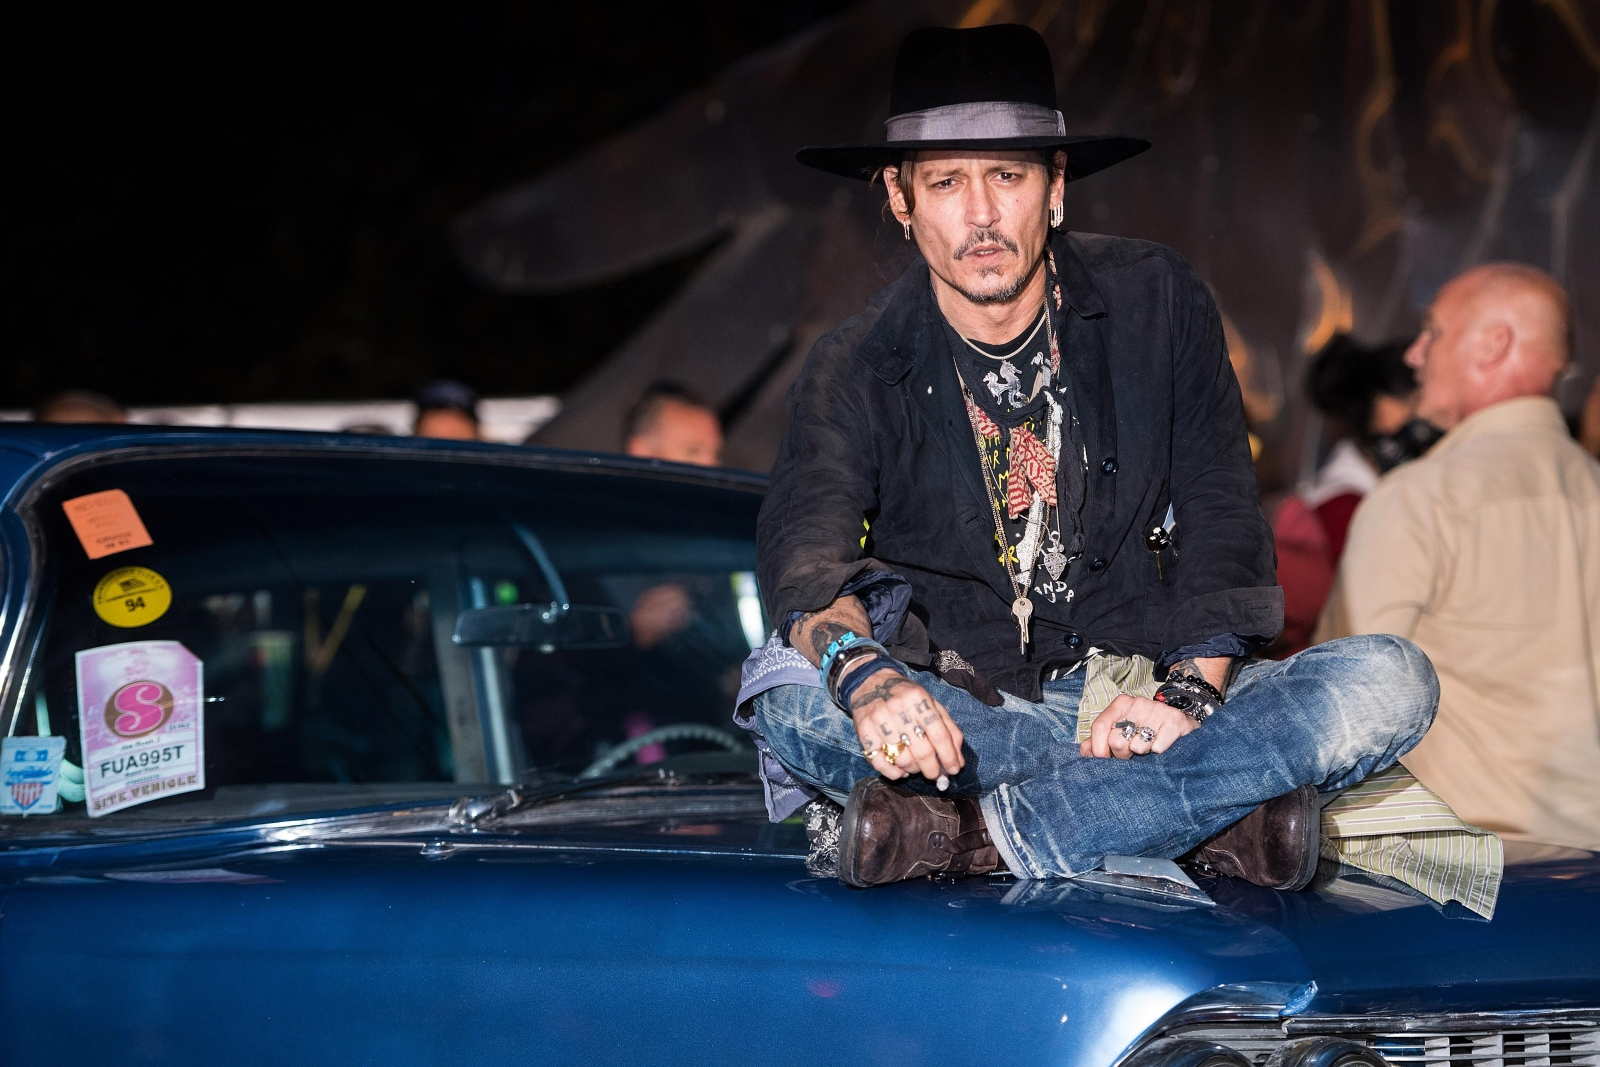 Johnny Depp lights Trump controversy at Glastonbury: 'When was the last time an actor assassinated a president'